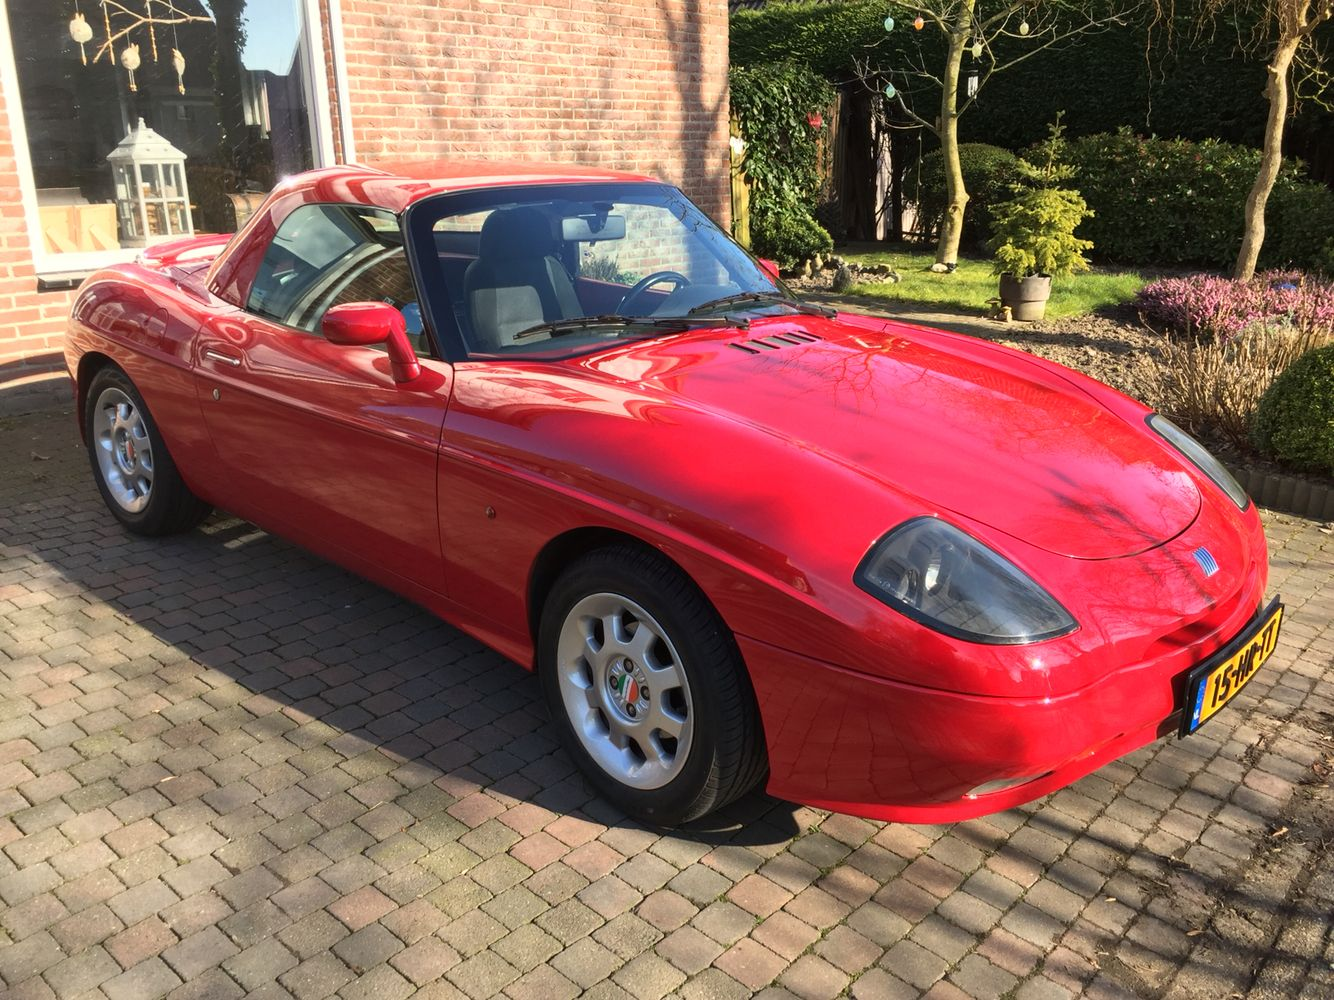 barchetta fiat rms an owners classic club feature motoring img undiscovered modern